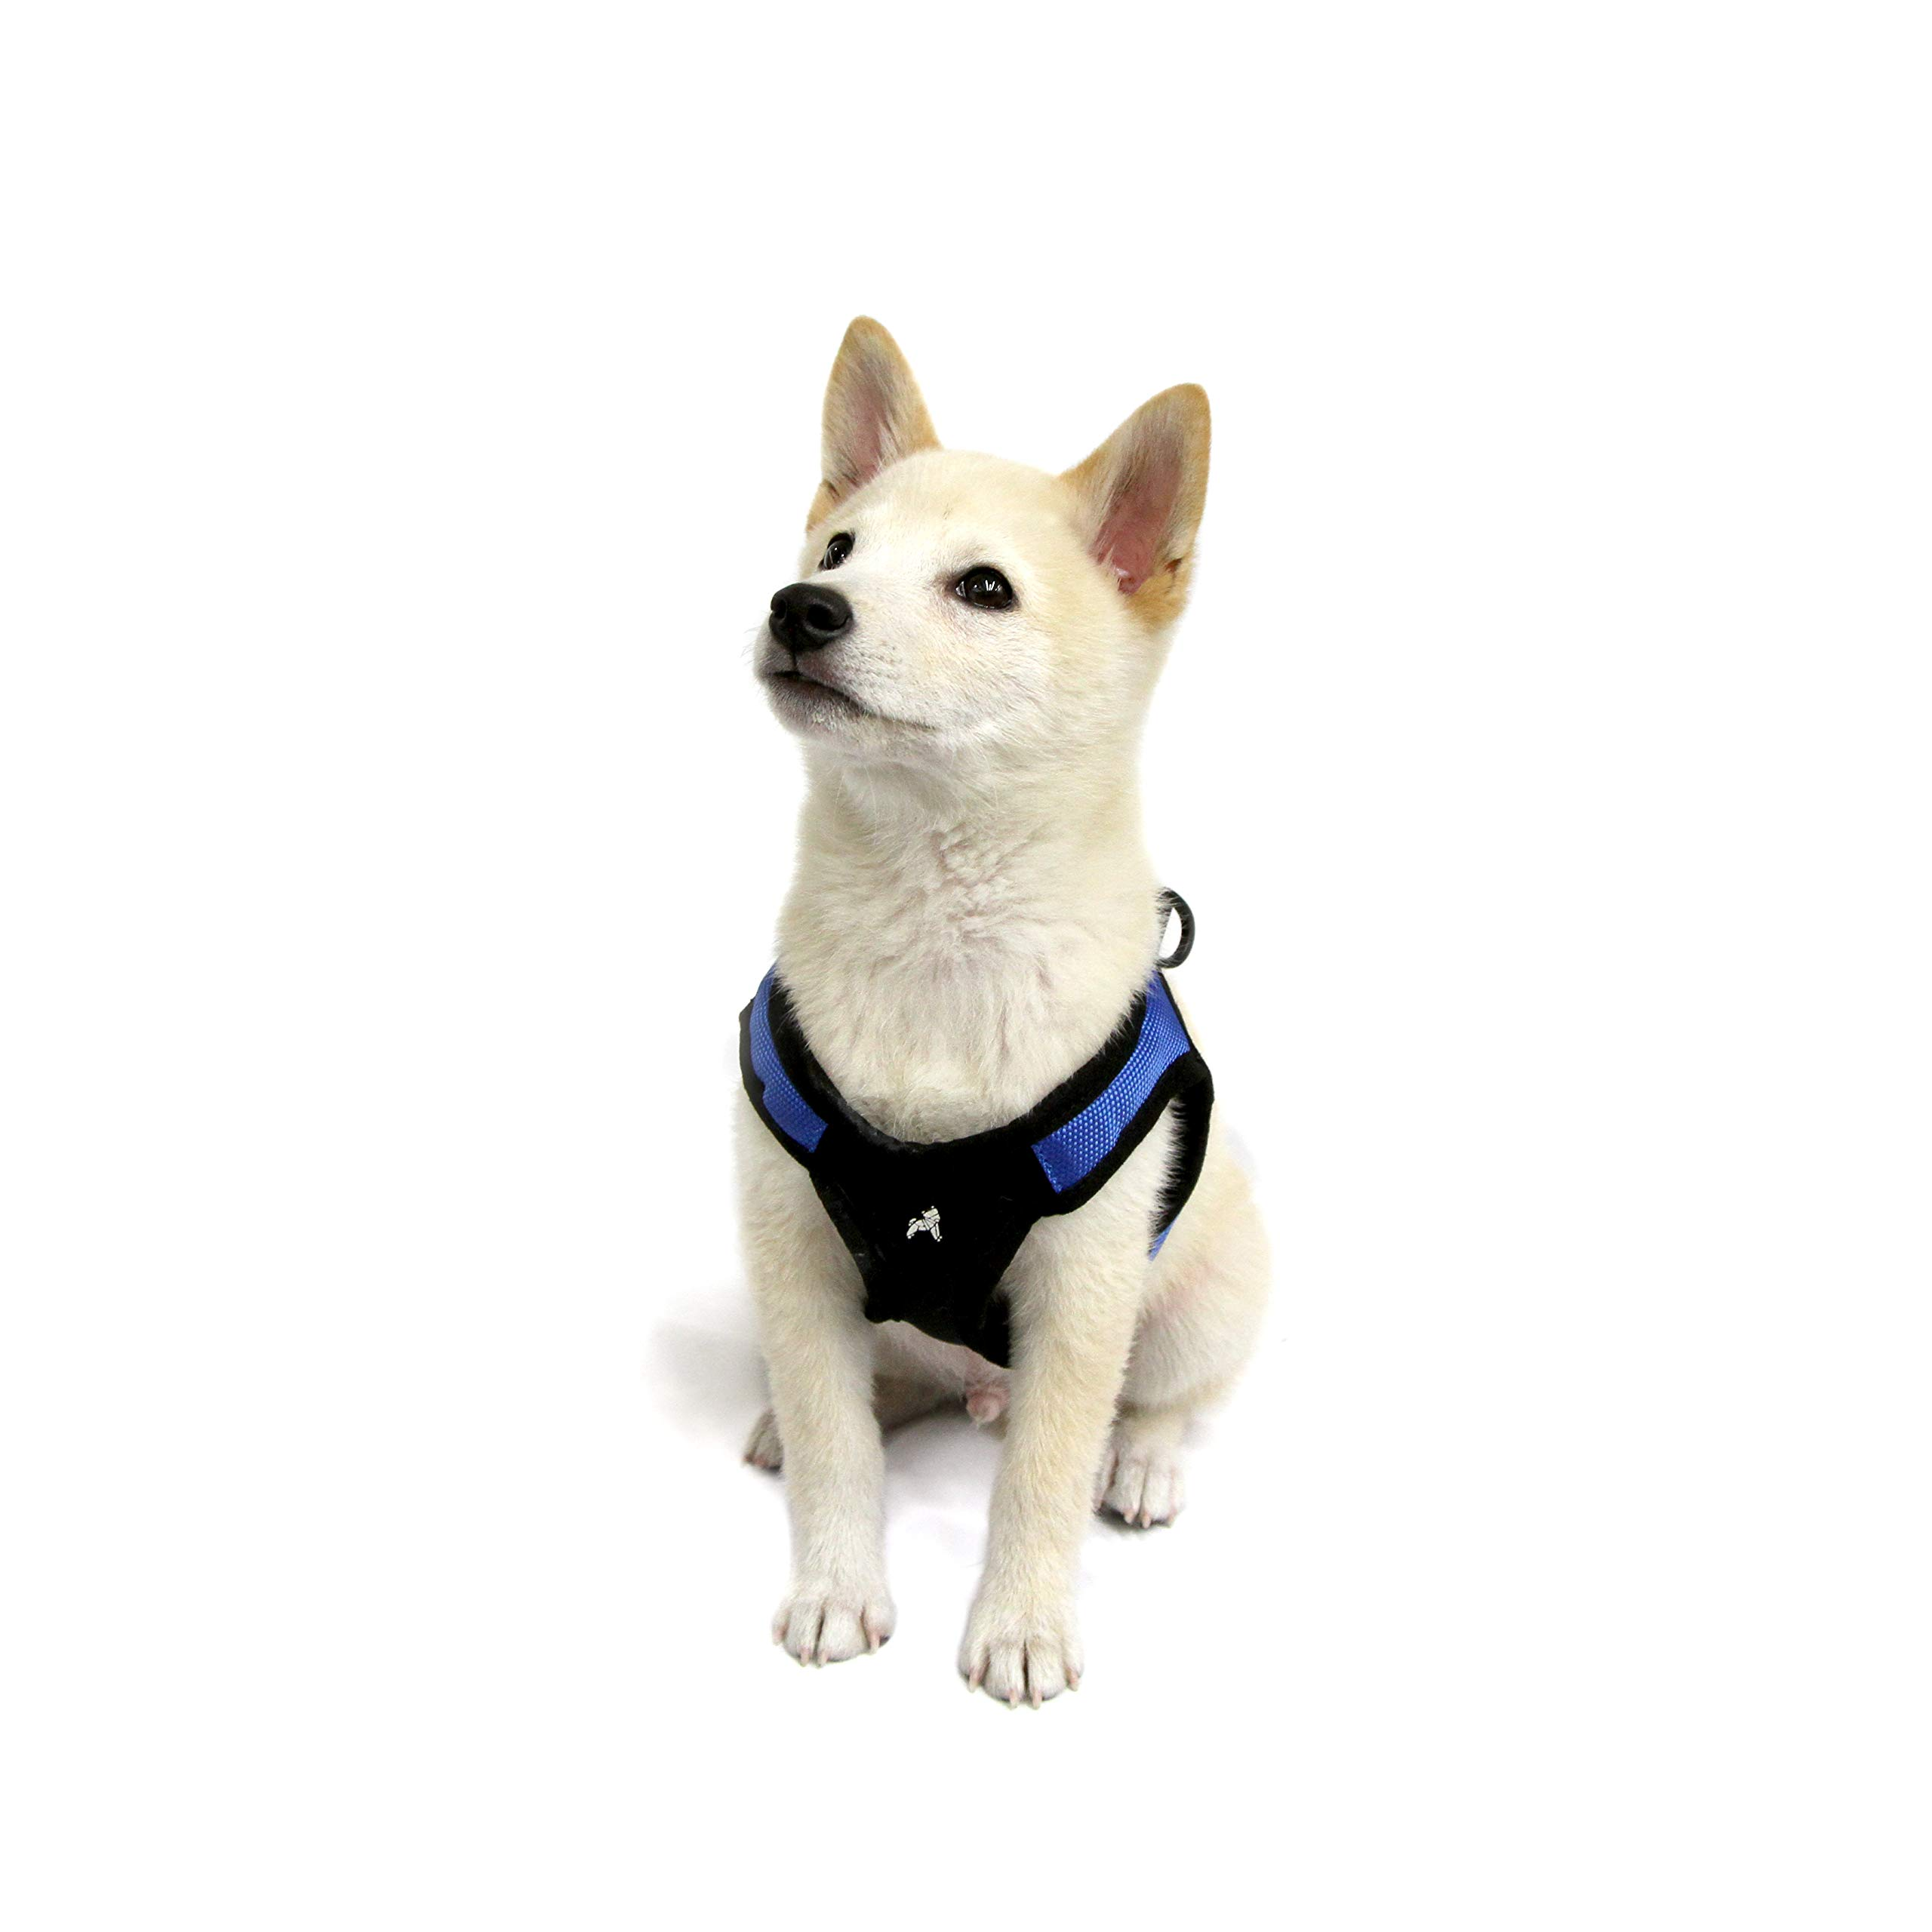 Gooby - Escape Free Easy Fit Harness, Small Dog Step-In Harness for Dogs that Like to Escape Their Harness, Blue, X-Small